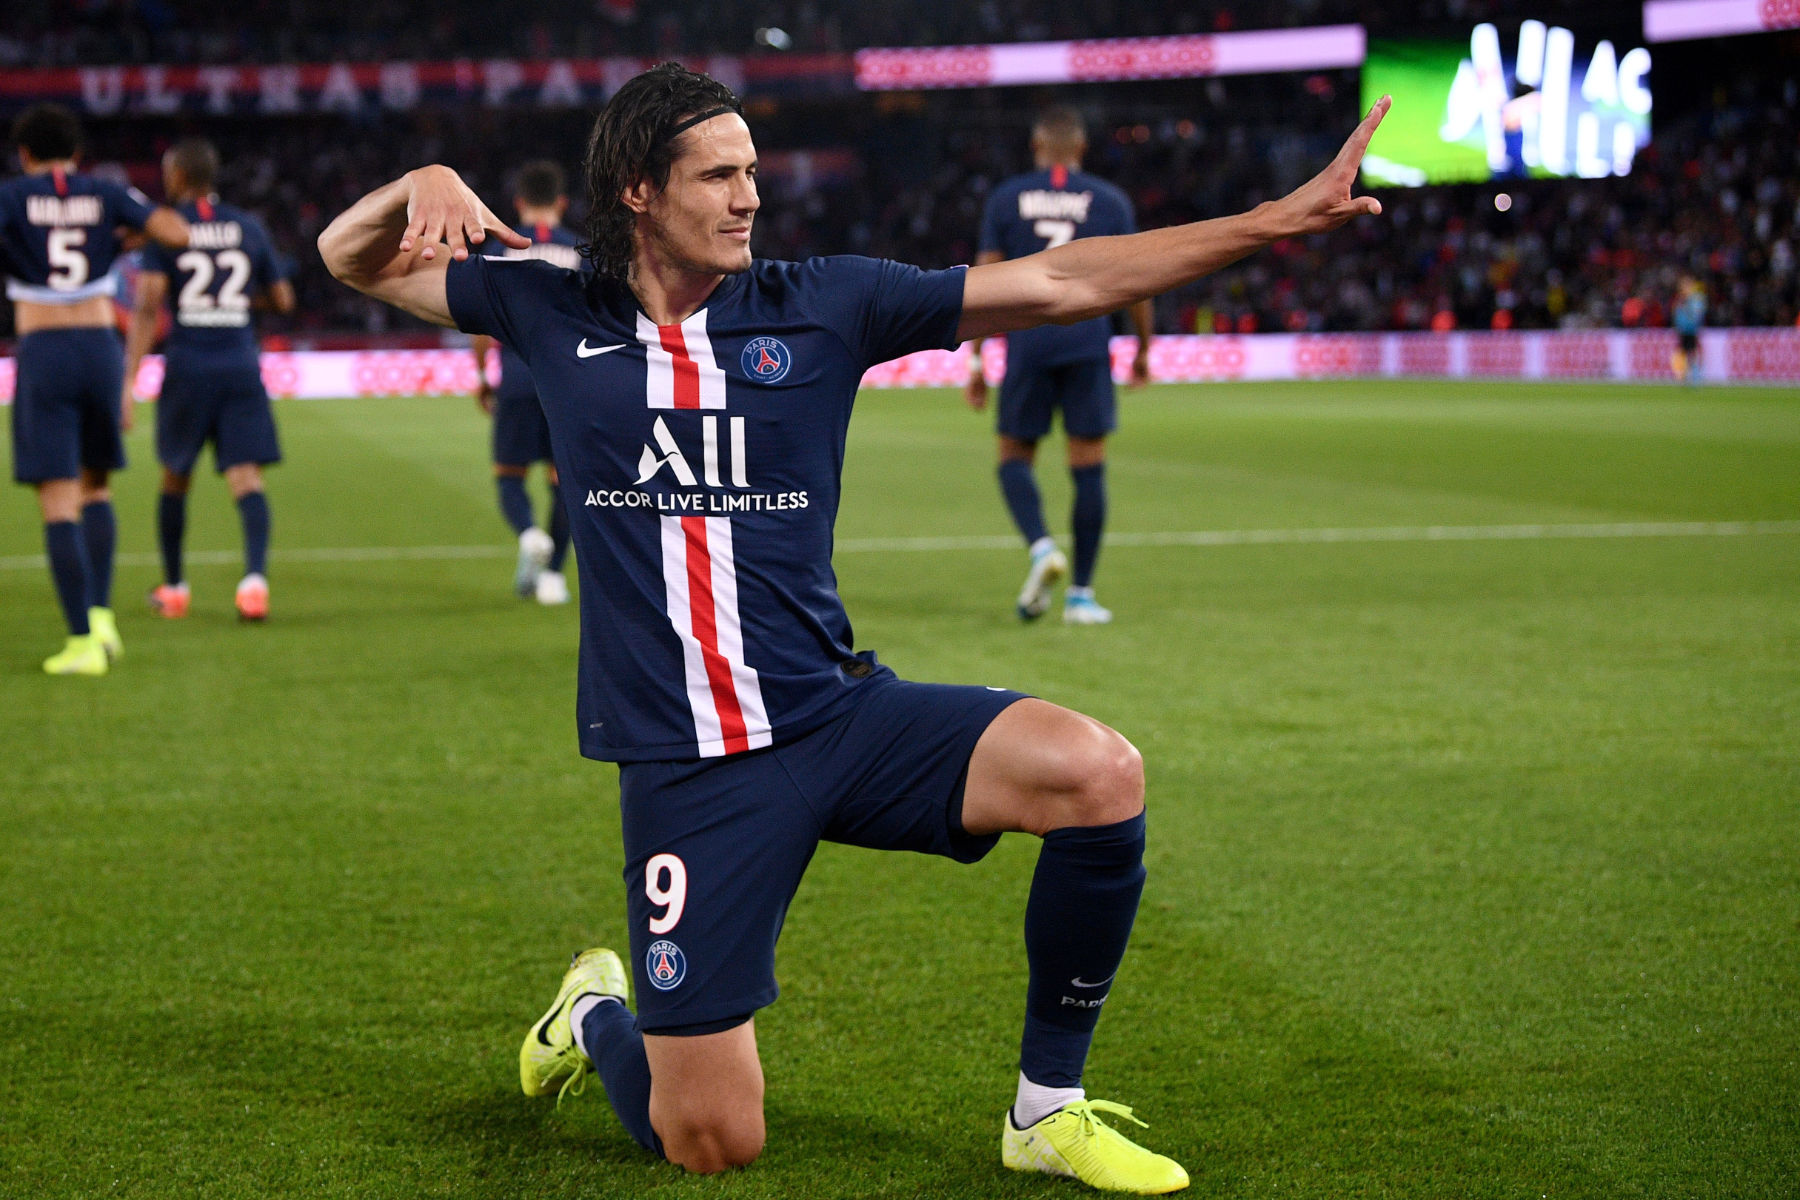 Neville says United are better off extending Cavani's contract.